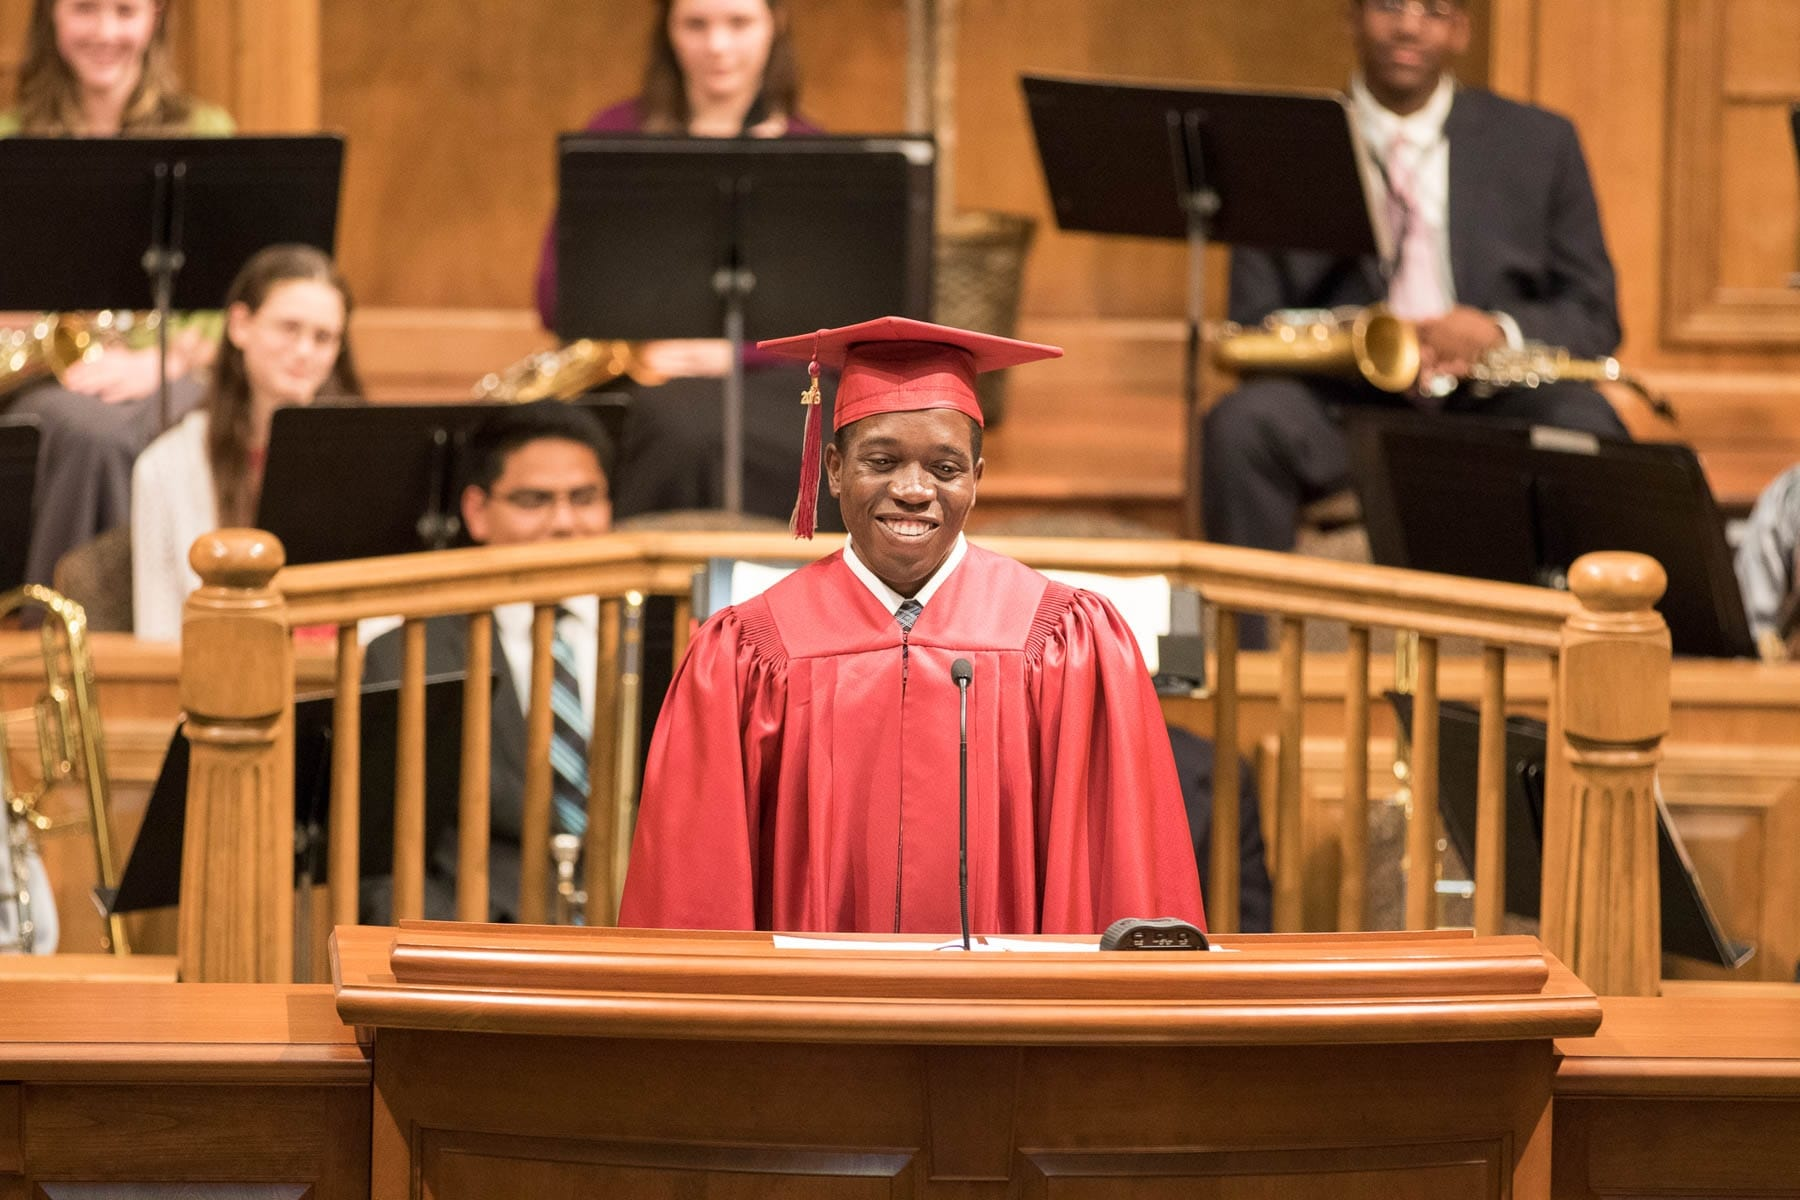 Fairhaven Baptist College and Academy Graduation 2016 (13 of 18)